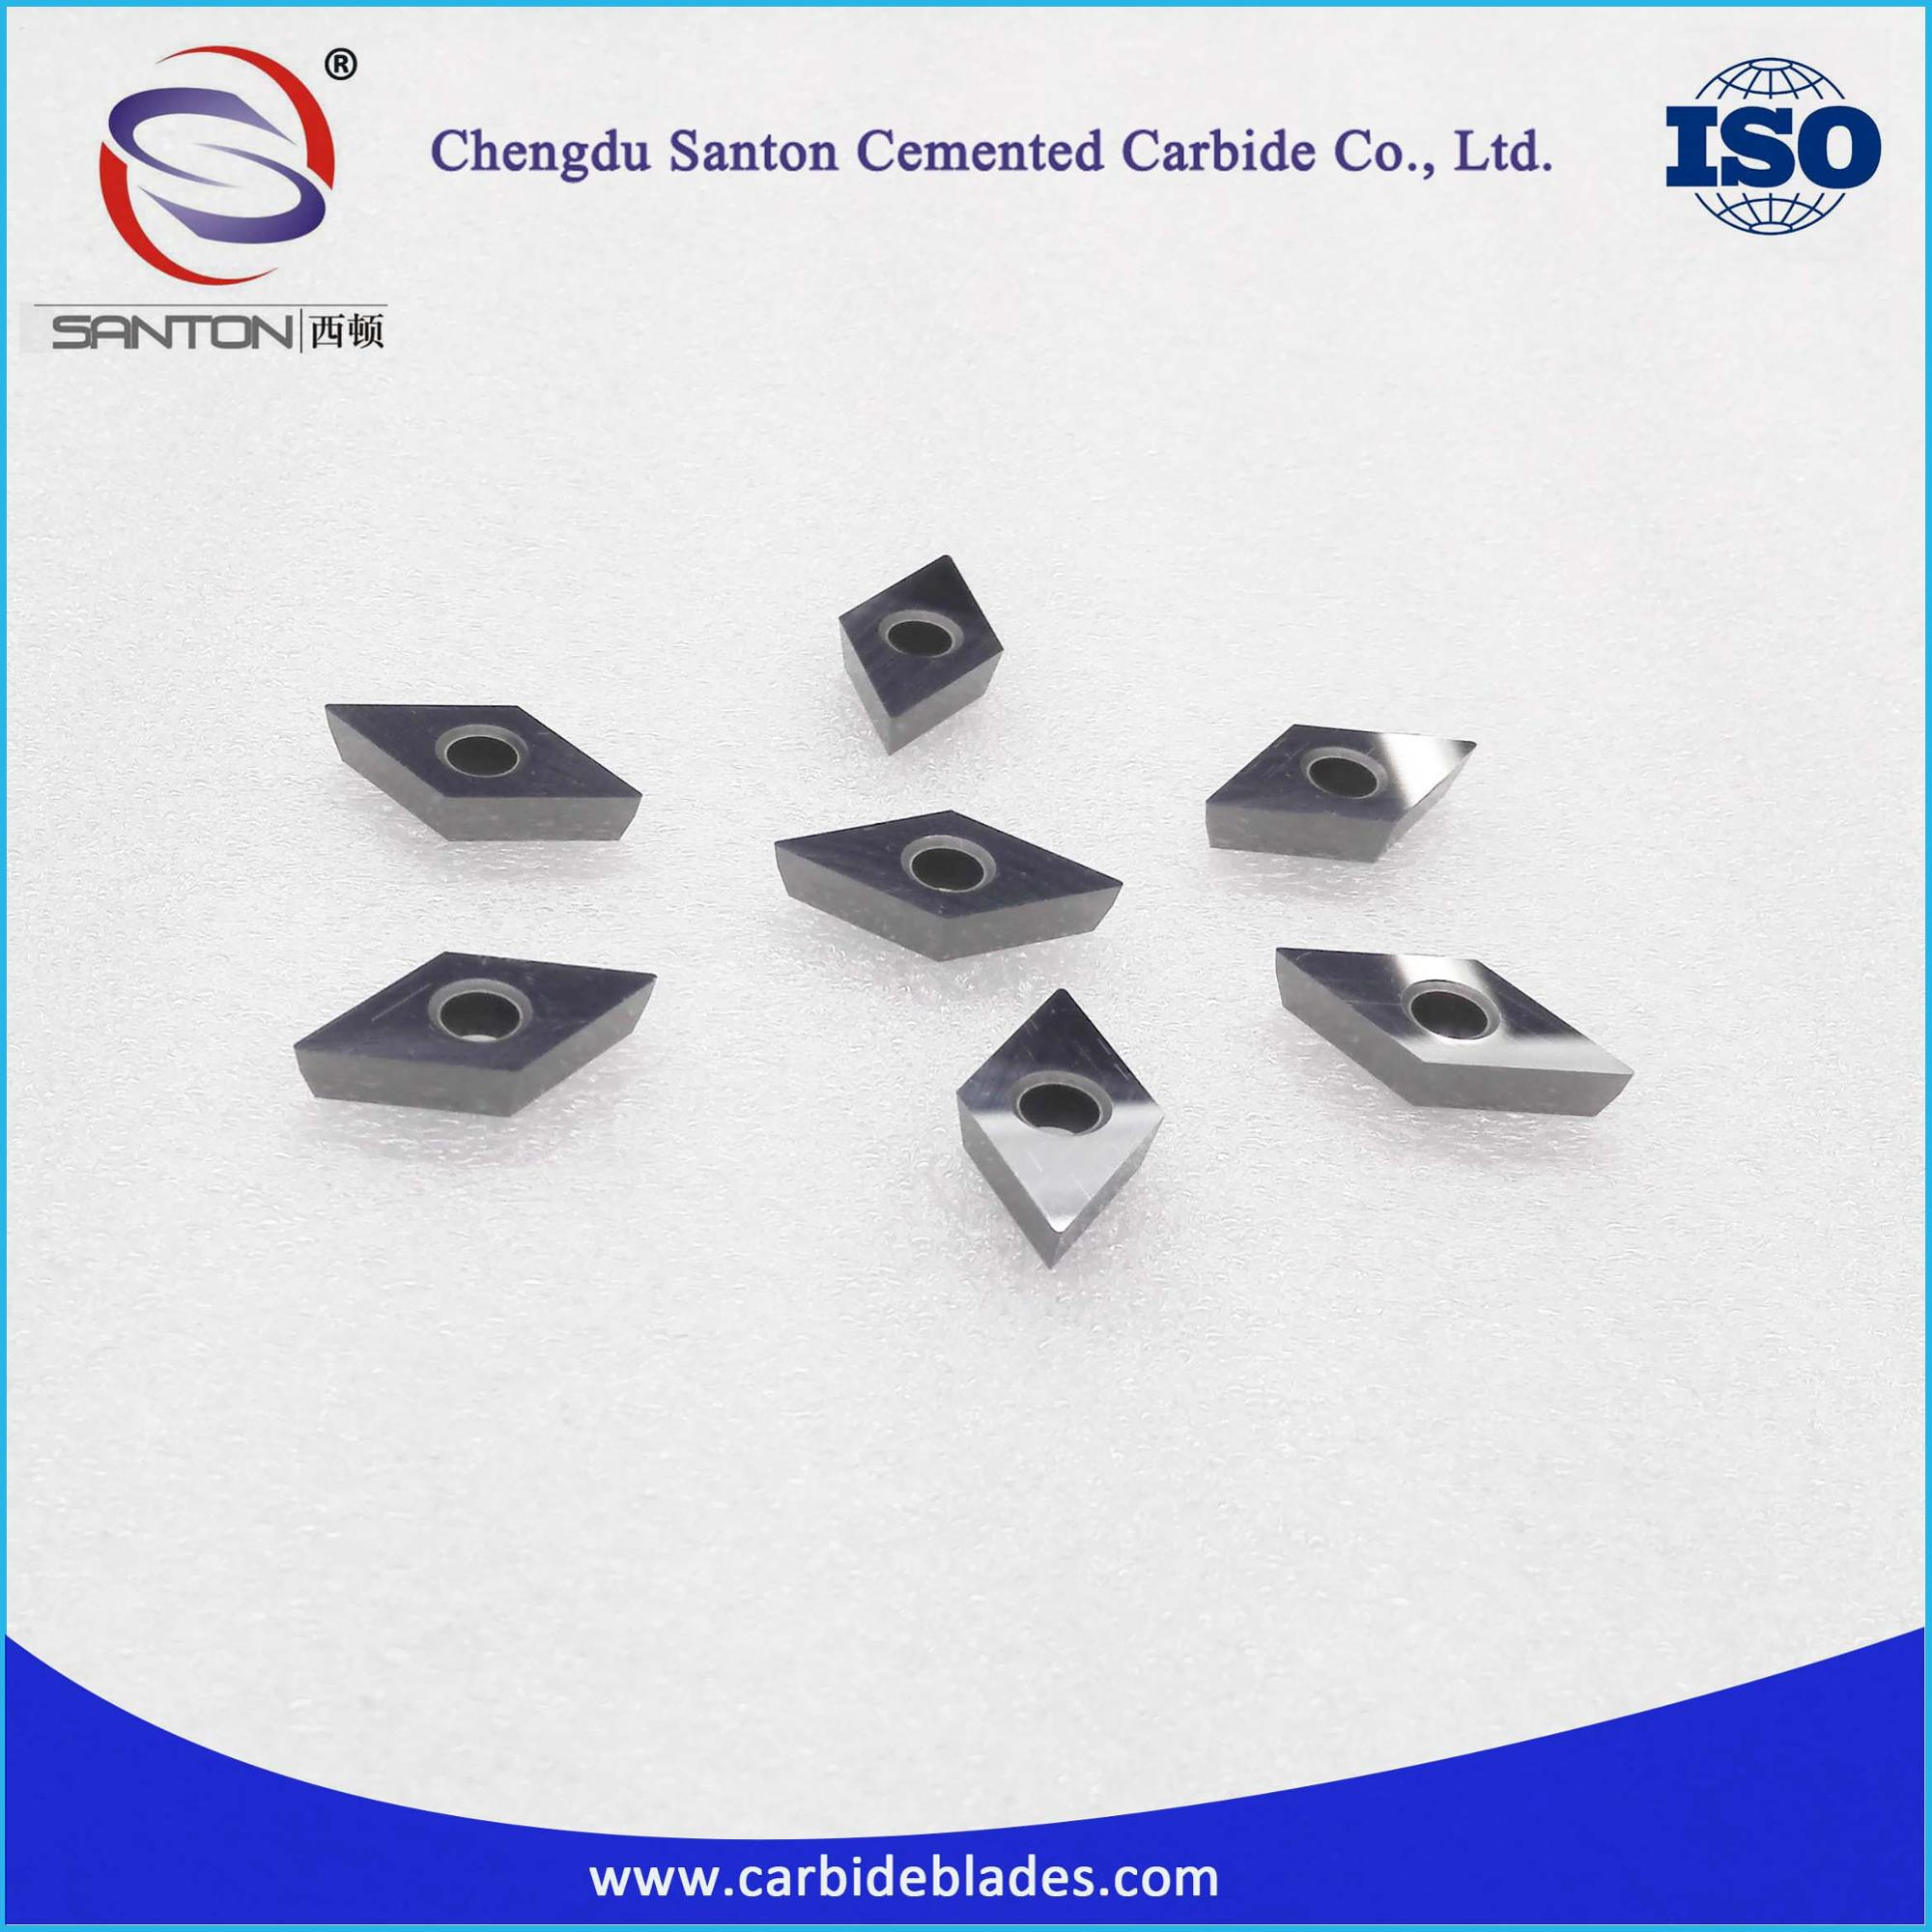 k30 YG8 hard alloy hartmetal carbide inserts for carbide tipped diamond tools